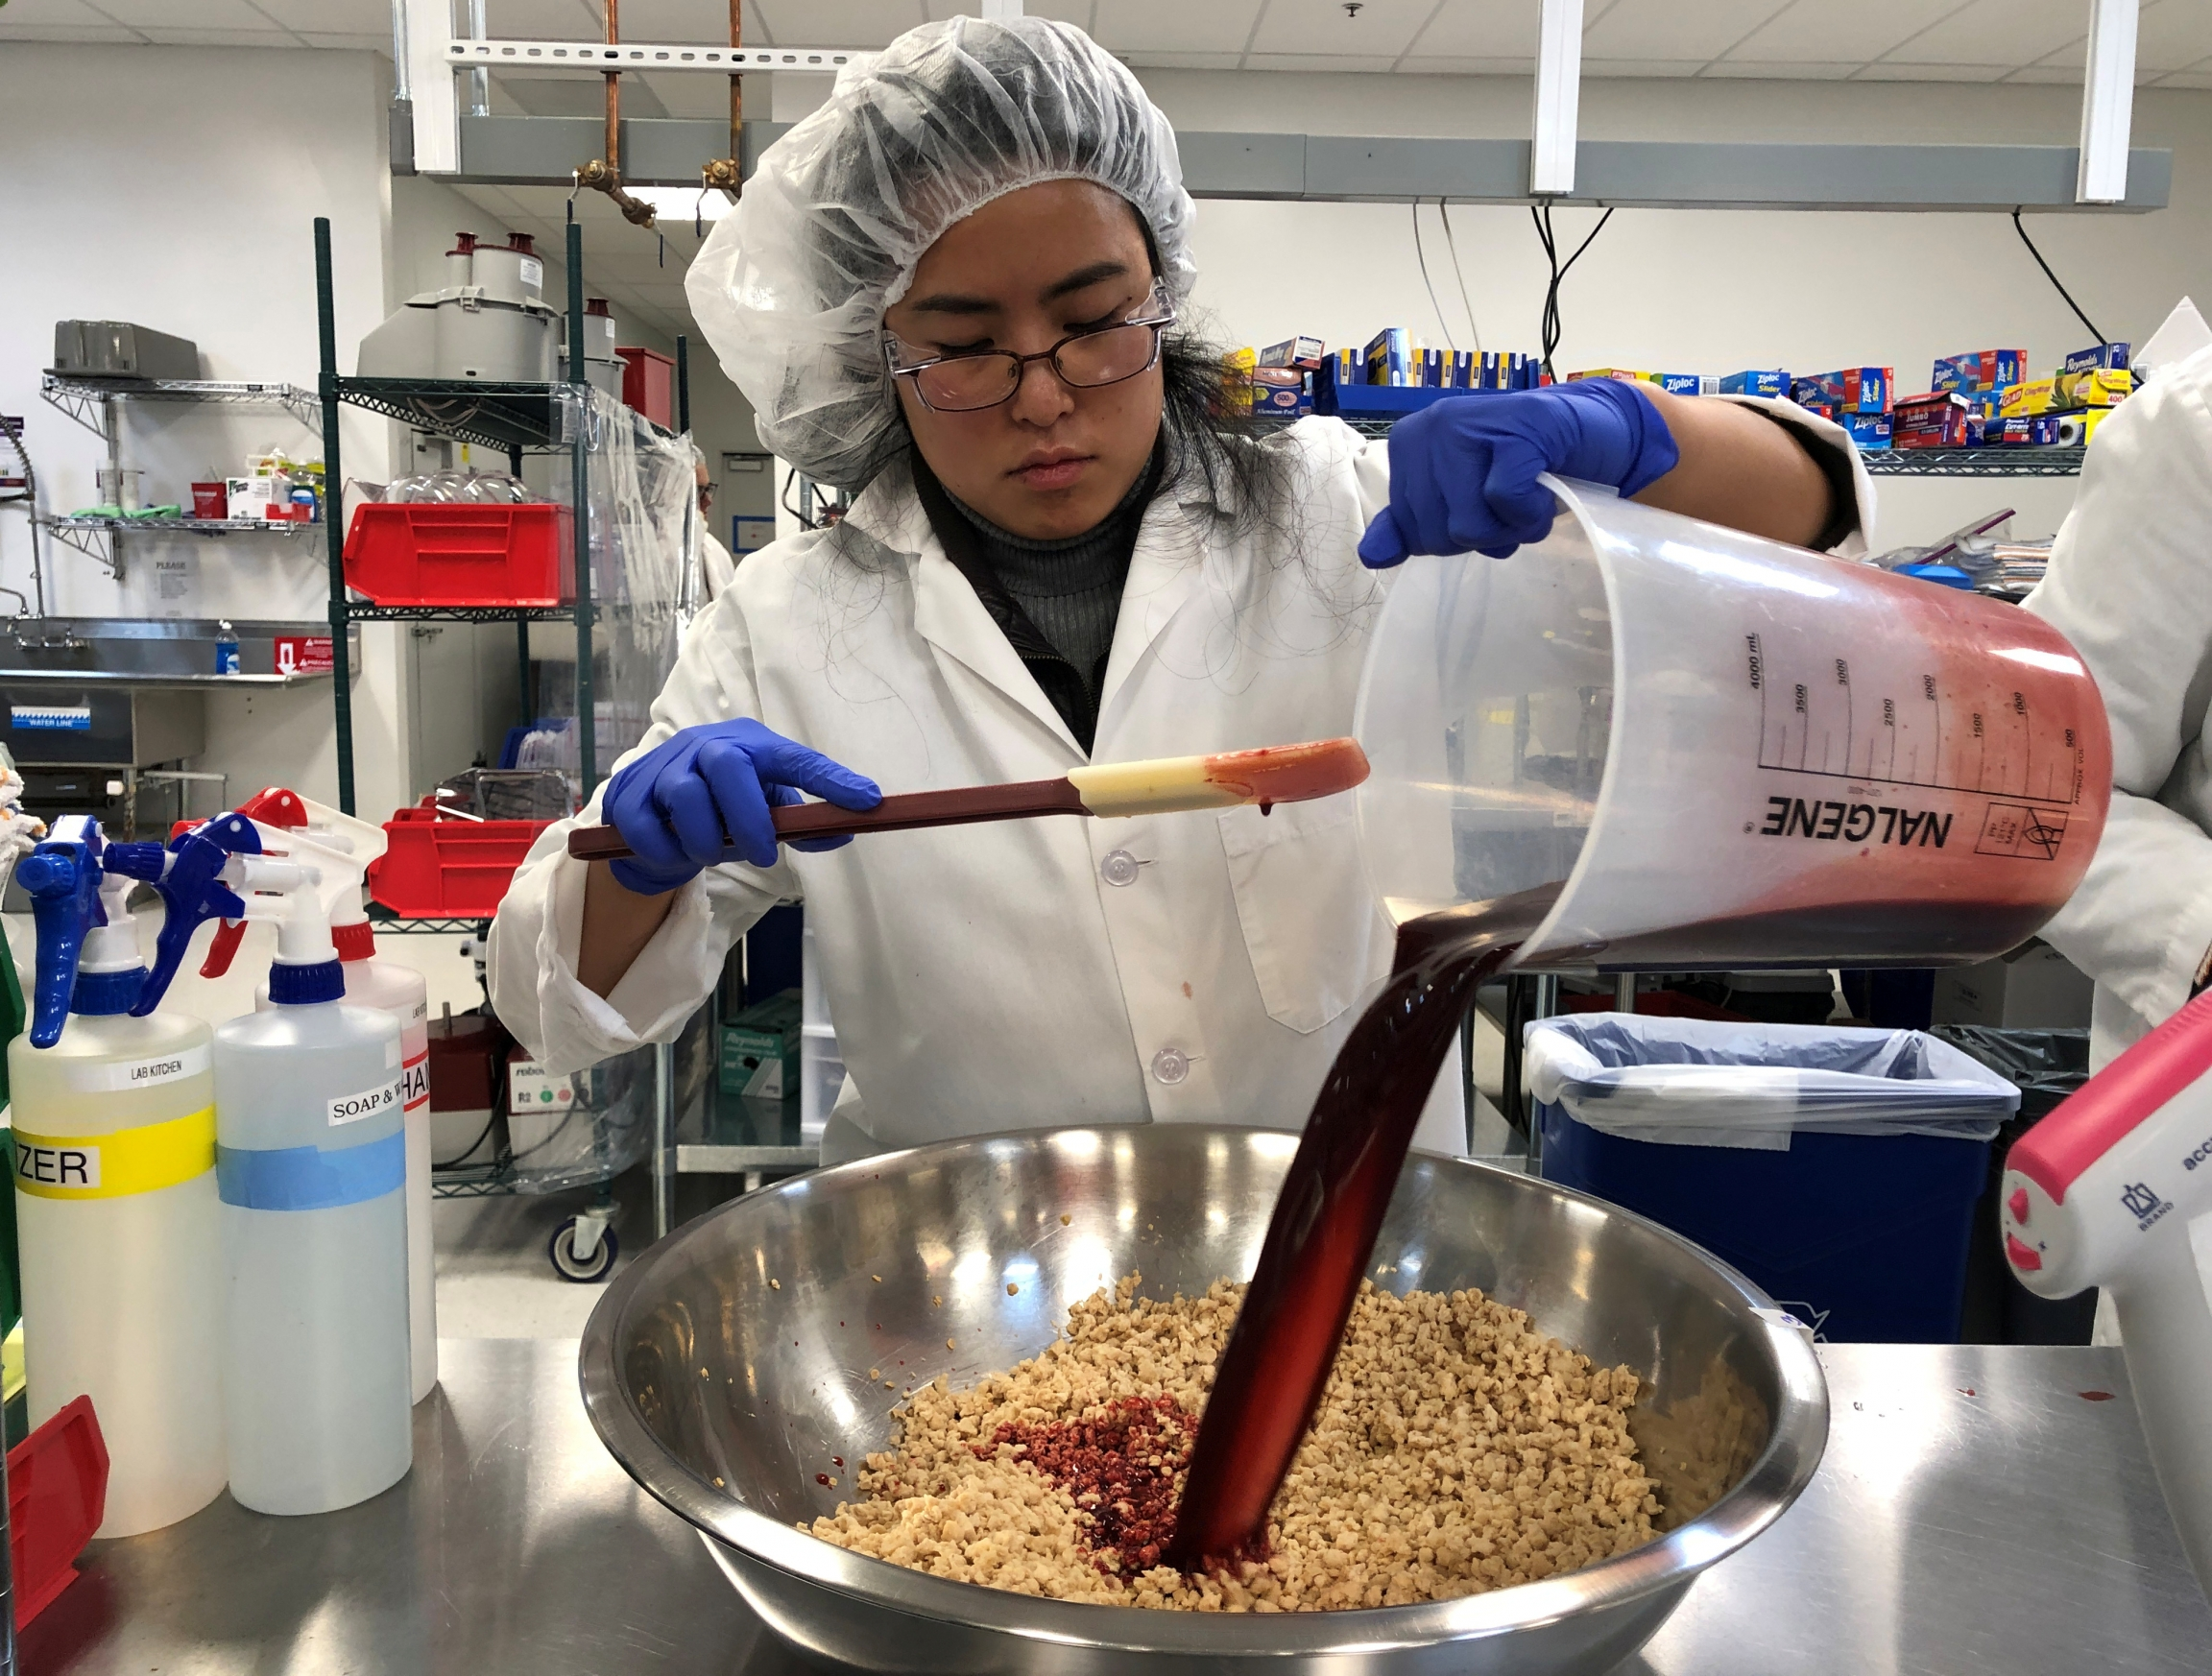 Impossible Foods research technician Alexia Yue pours a heme solution, the key ingredient, into a plant-based mixture for burgers at the company's facility in Redwood City, California. March 26, 2019.